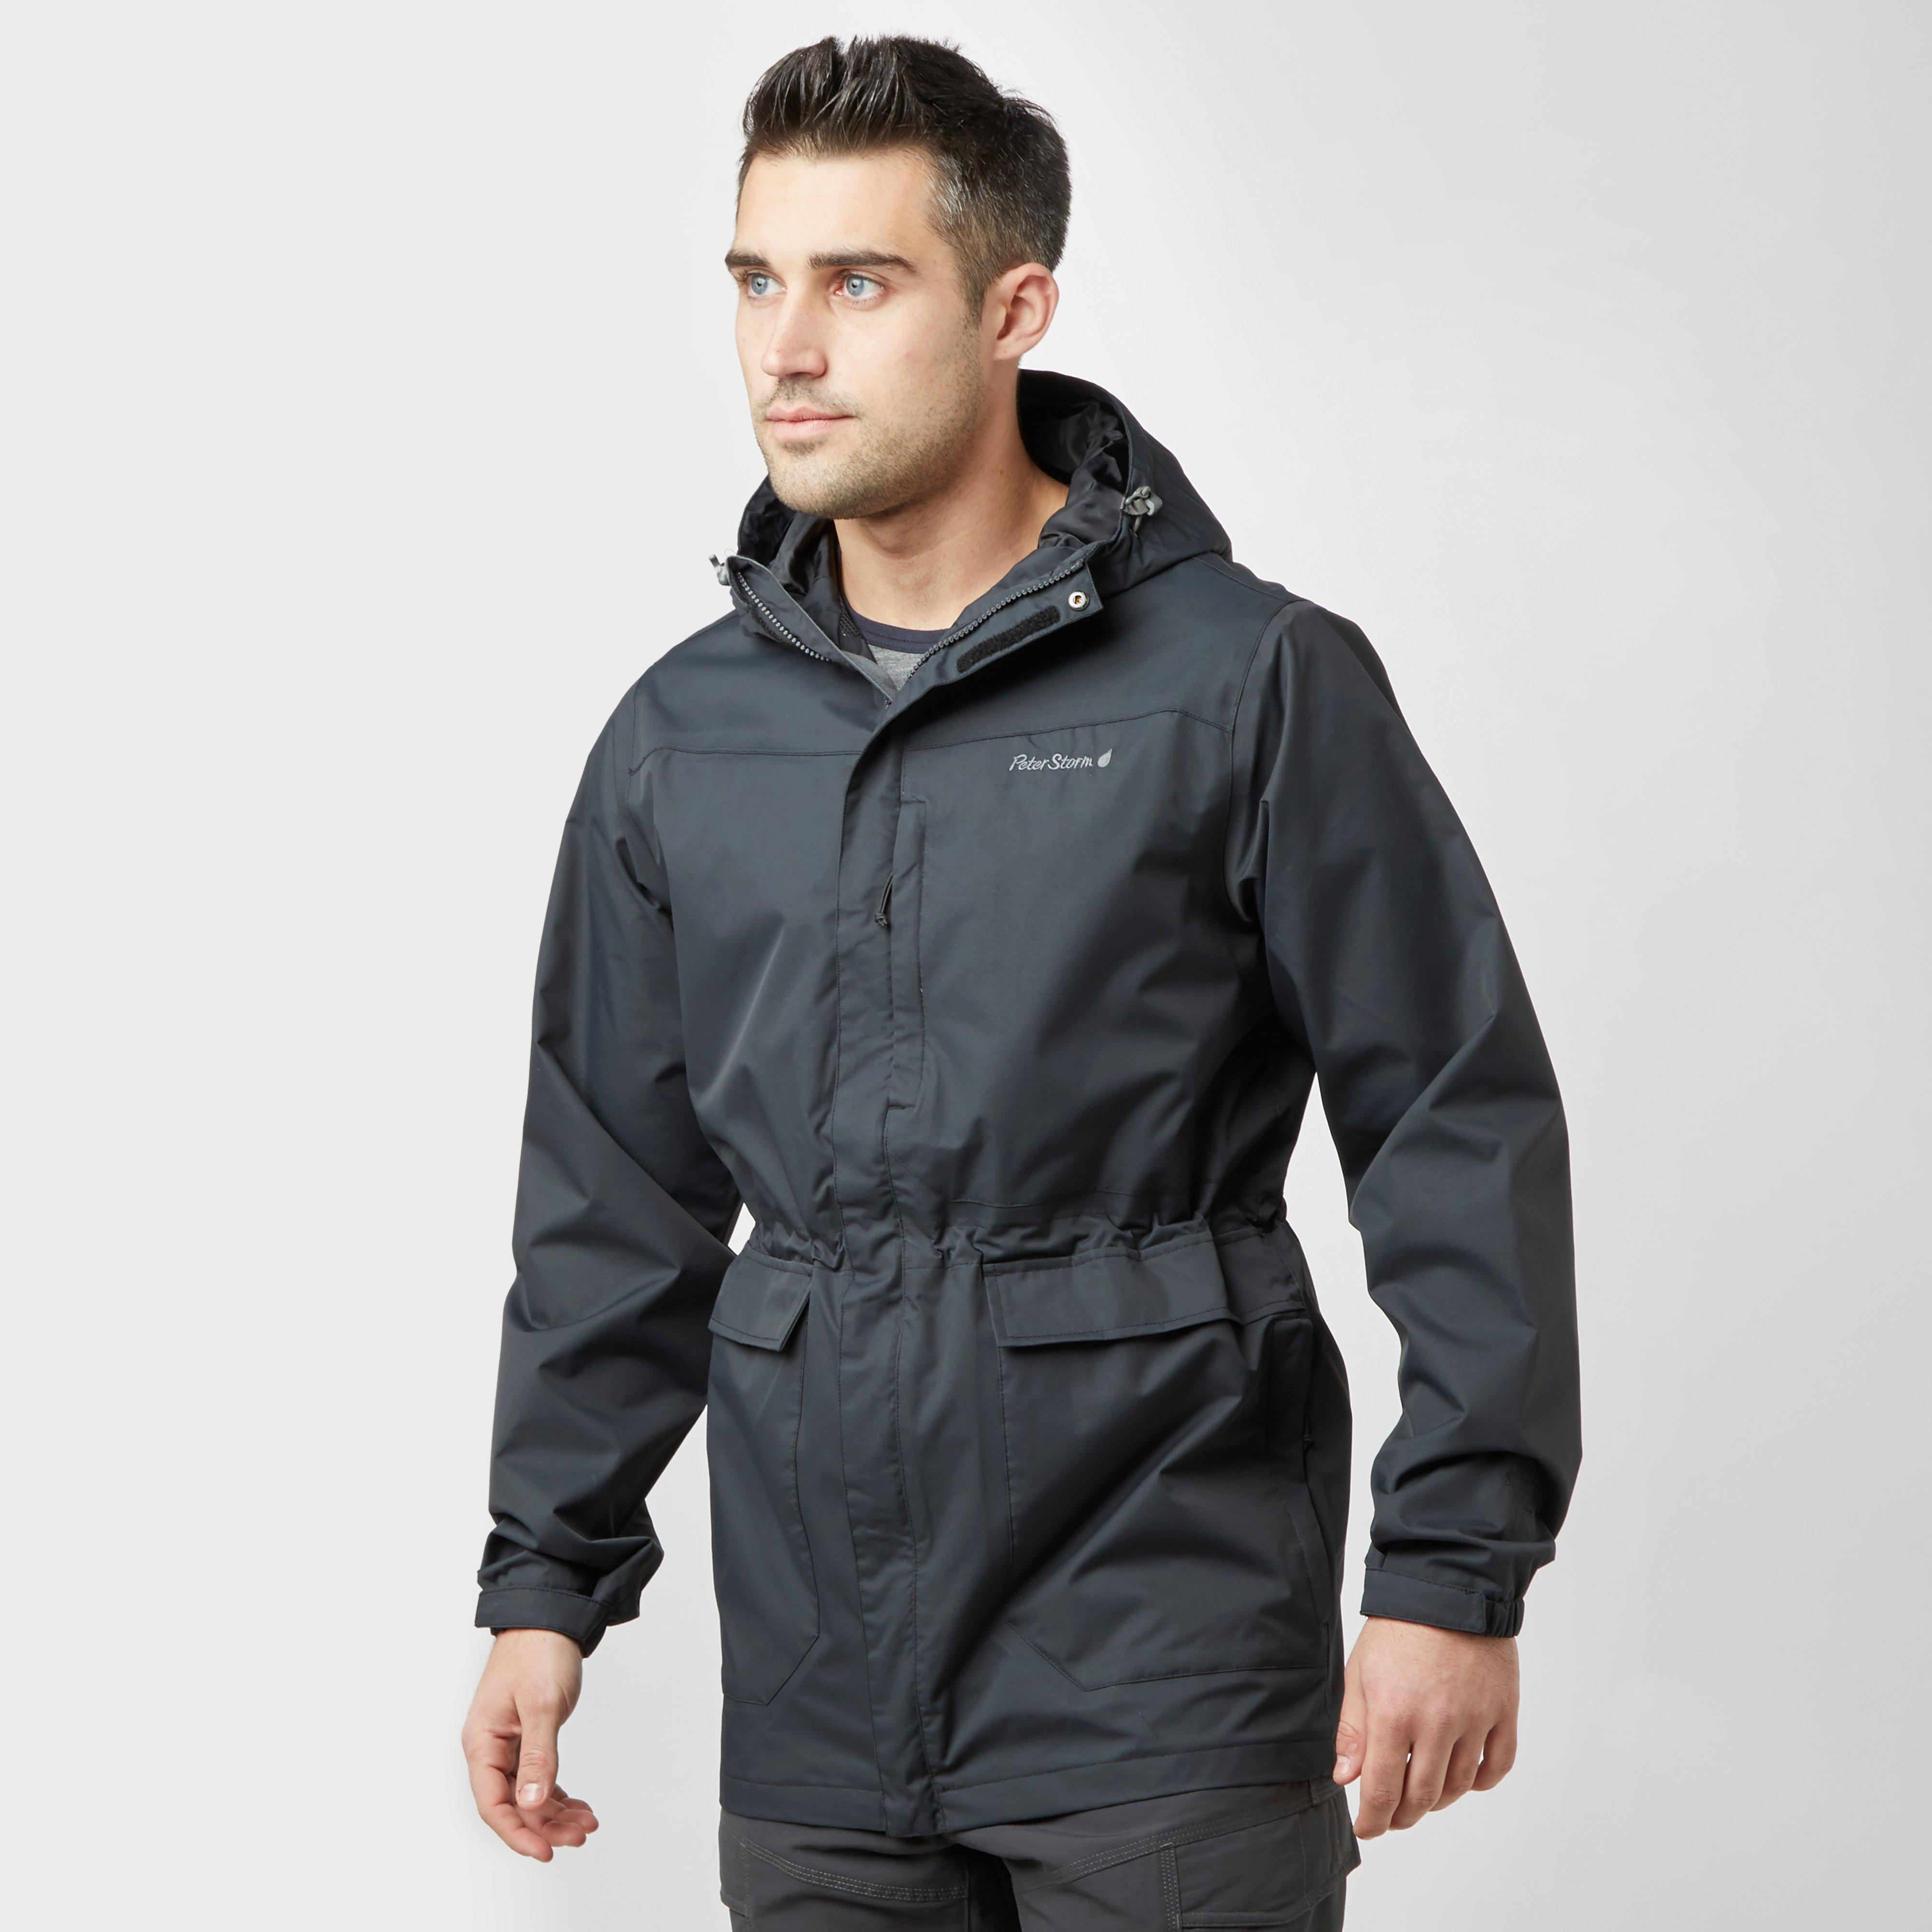 Peter Storm Men's Cyclone Waterproof Jacket, Black